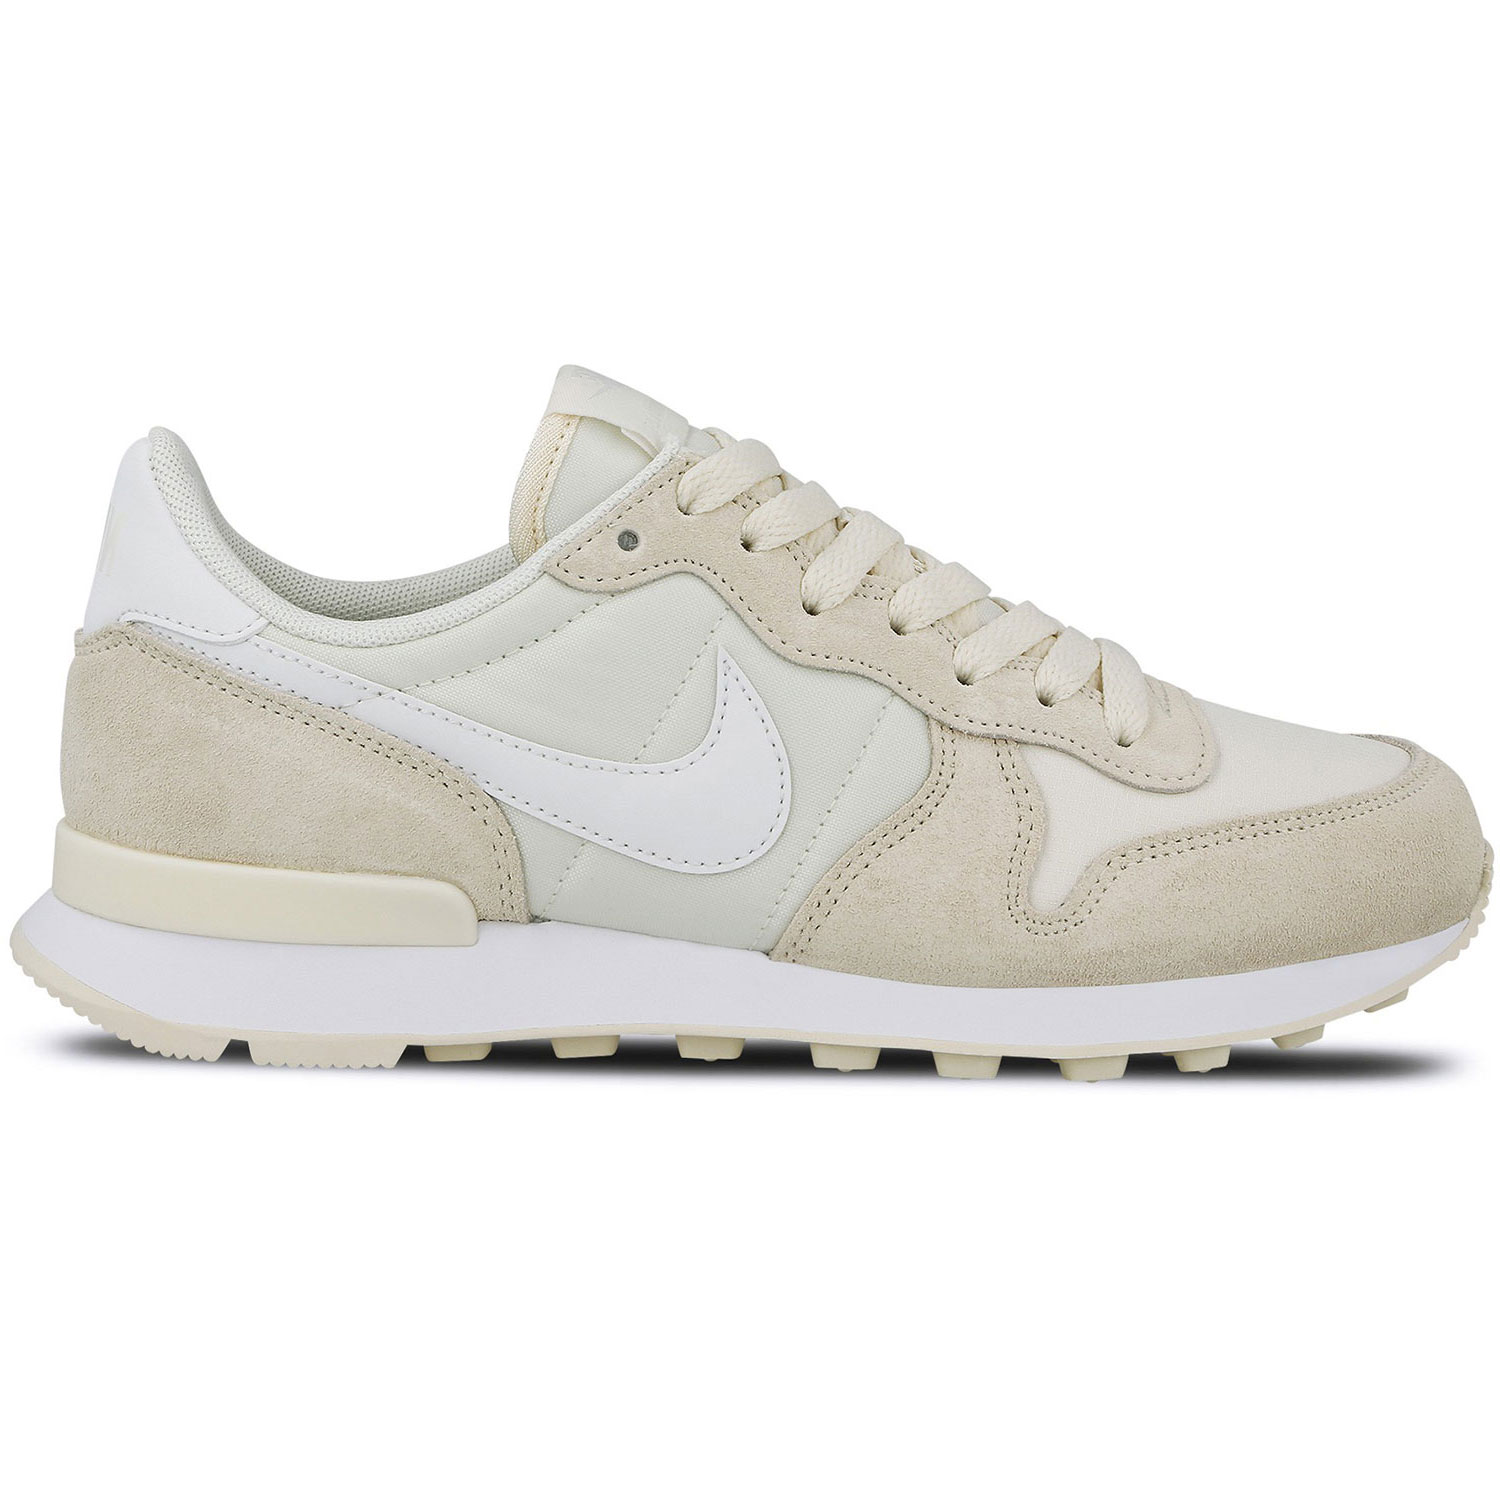 Nike WMNS Internationalist Damen Sneaker creme weiß 828407 104